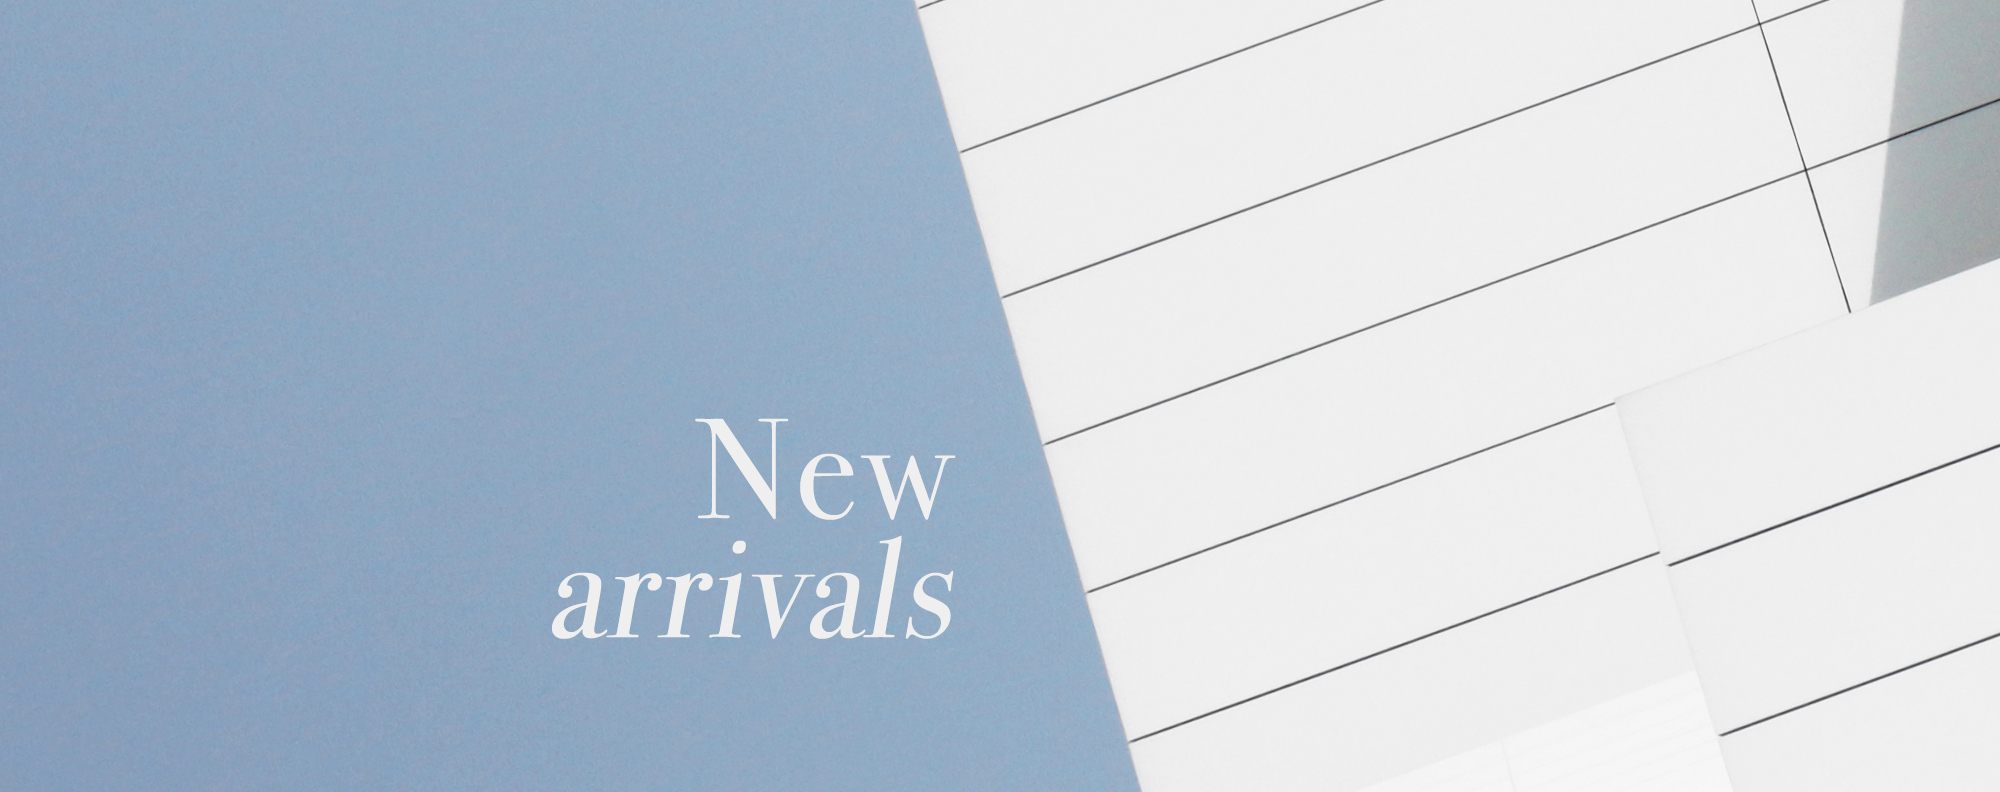 New Arrivals 2019 - AW